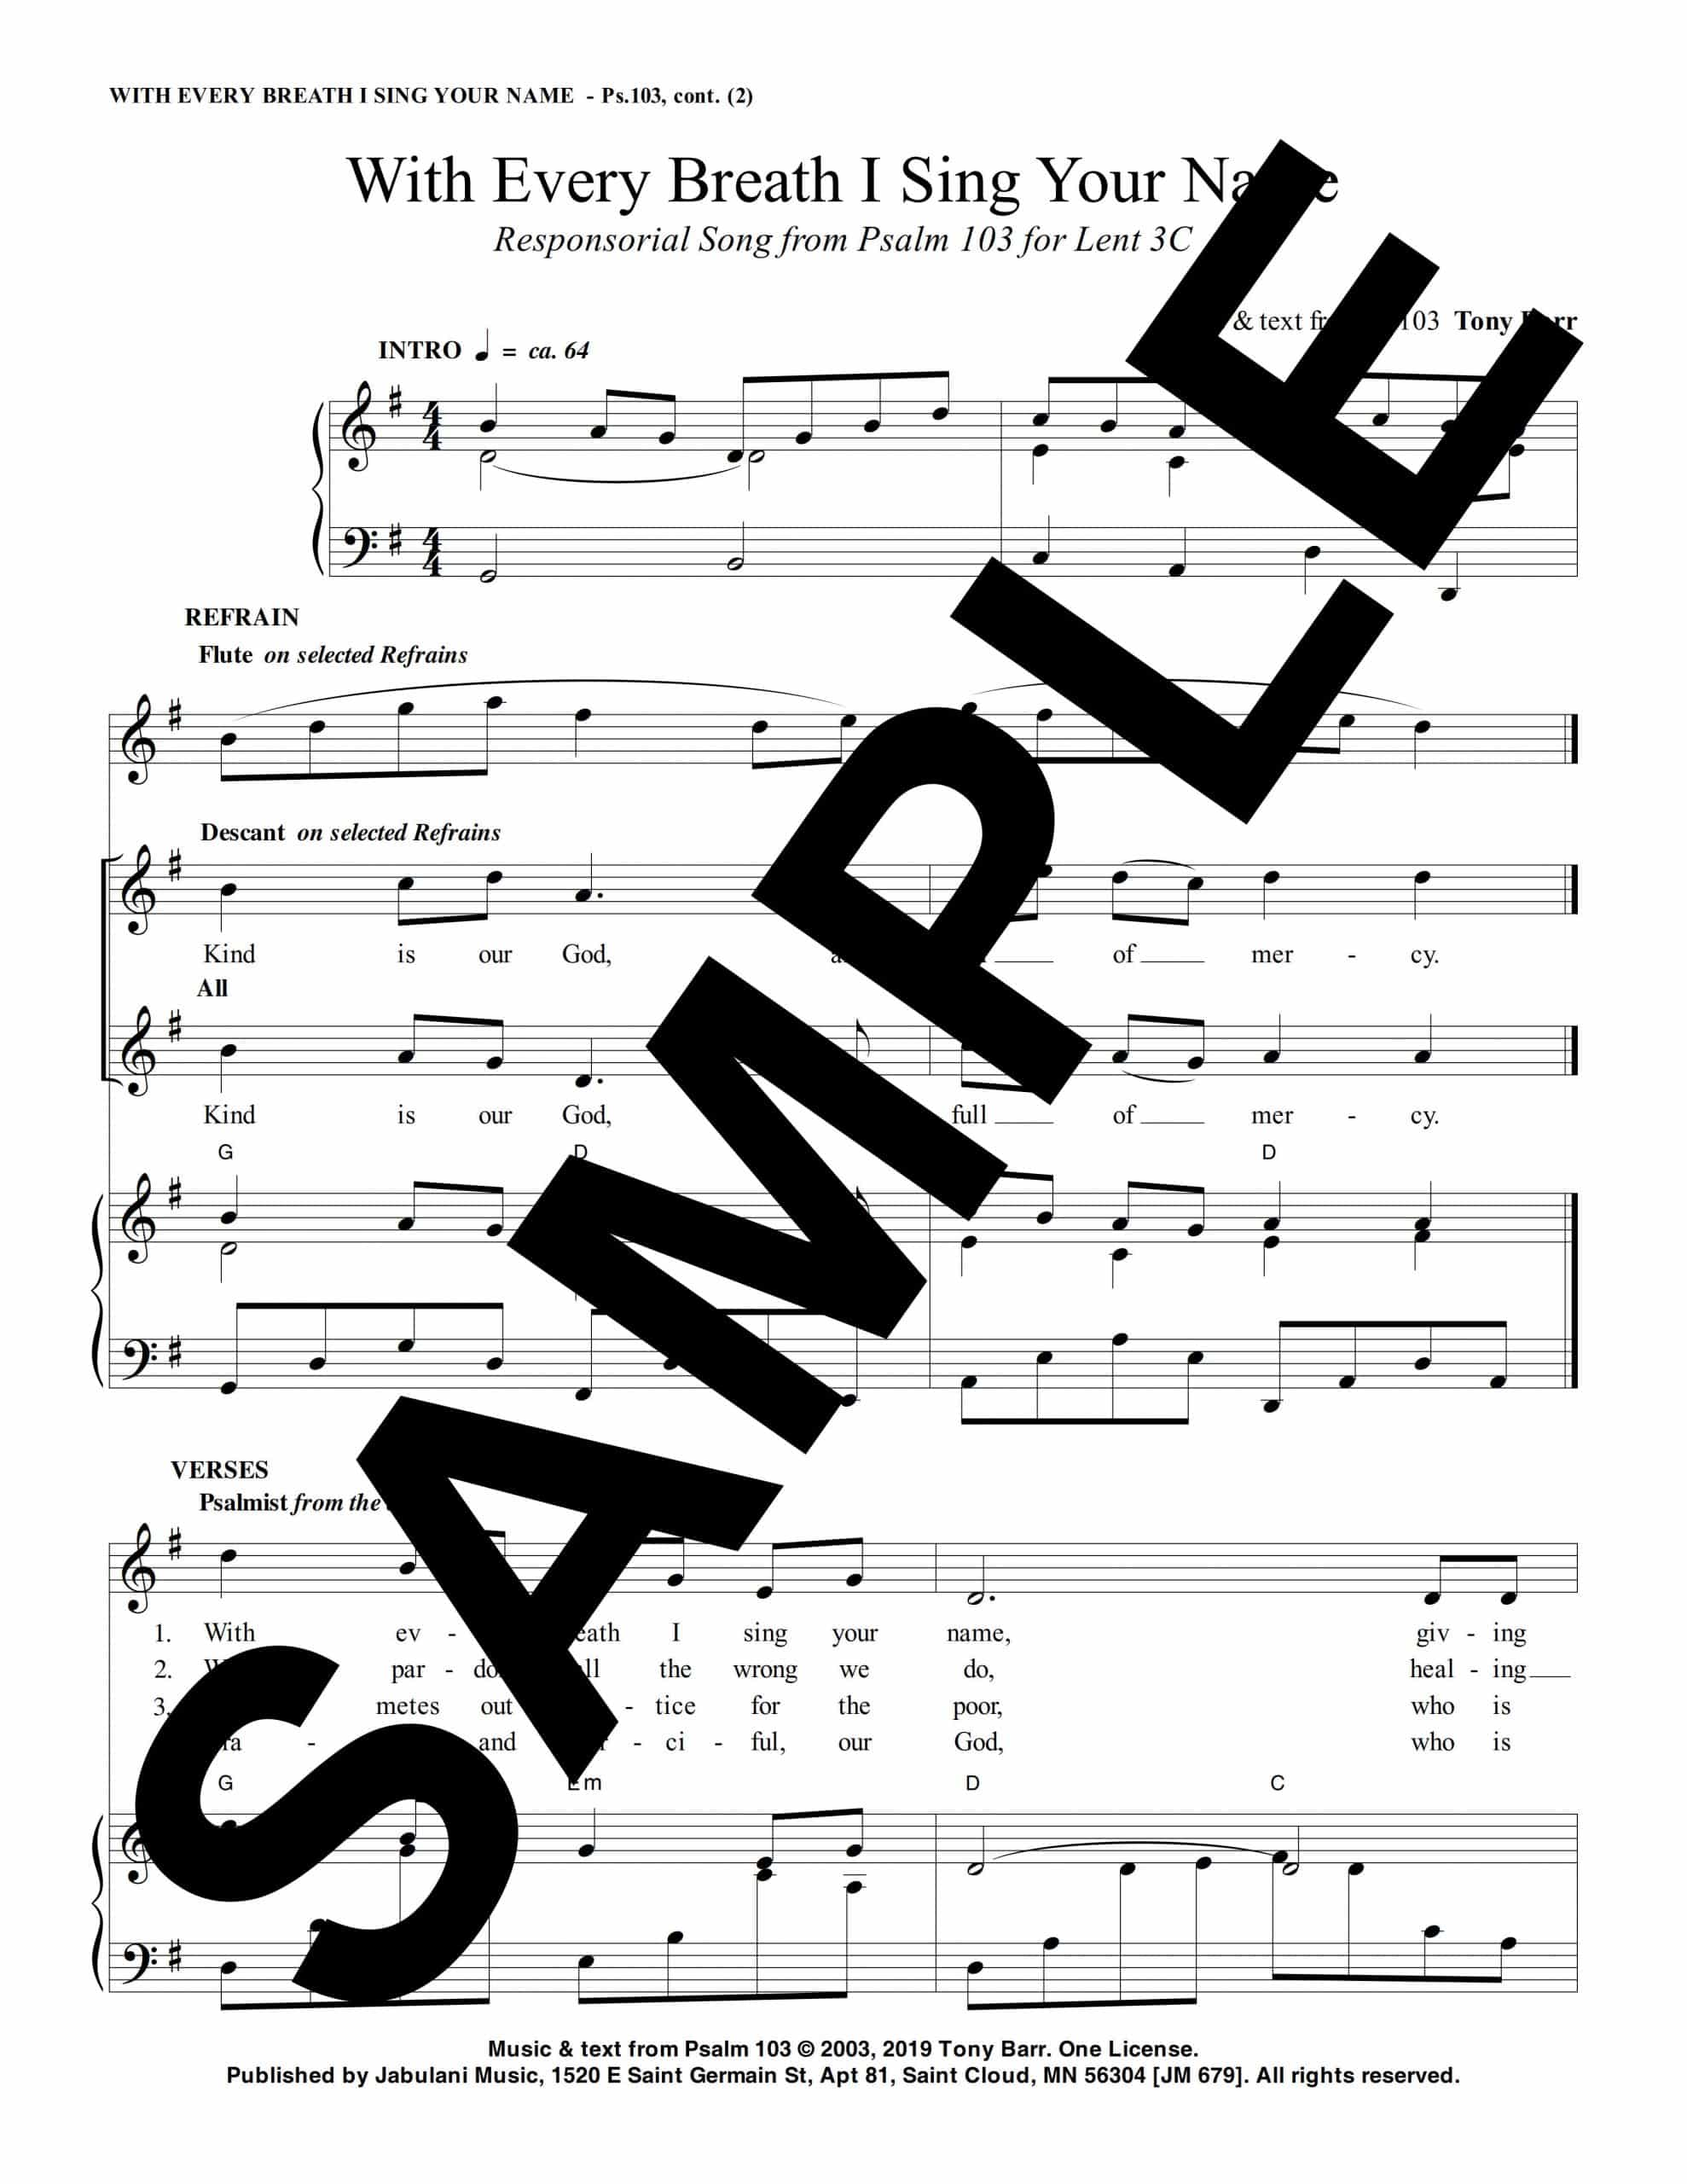 04 Lent 3C Ps 103 With Every Breath I Sing Your Name jm 679Sample 1 scaled